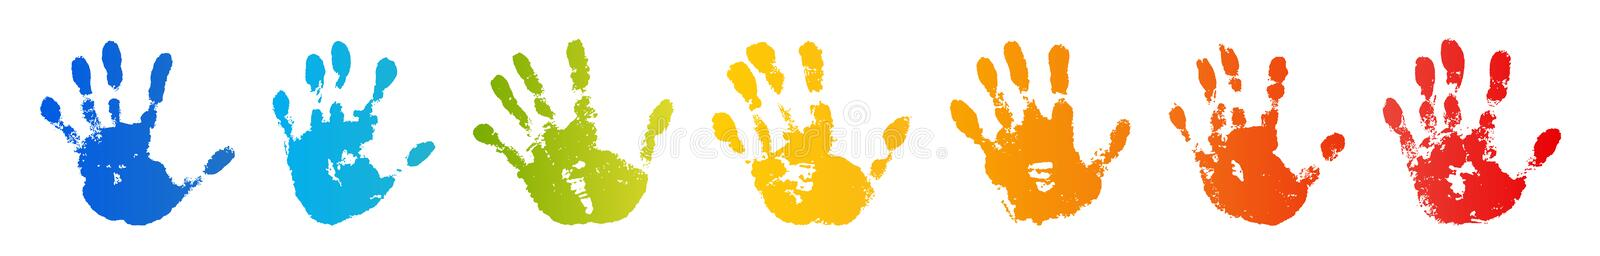 Hand rainbow print isolated on white background. Color child handprint. Creative paint hands prints. Happy childhood vector illustration